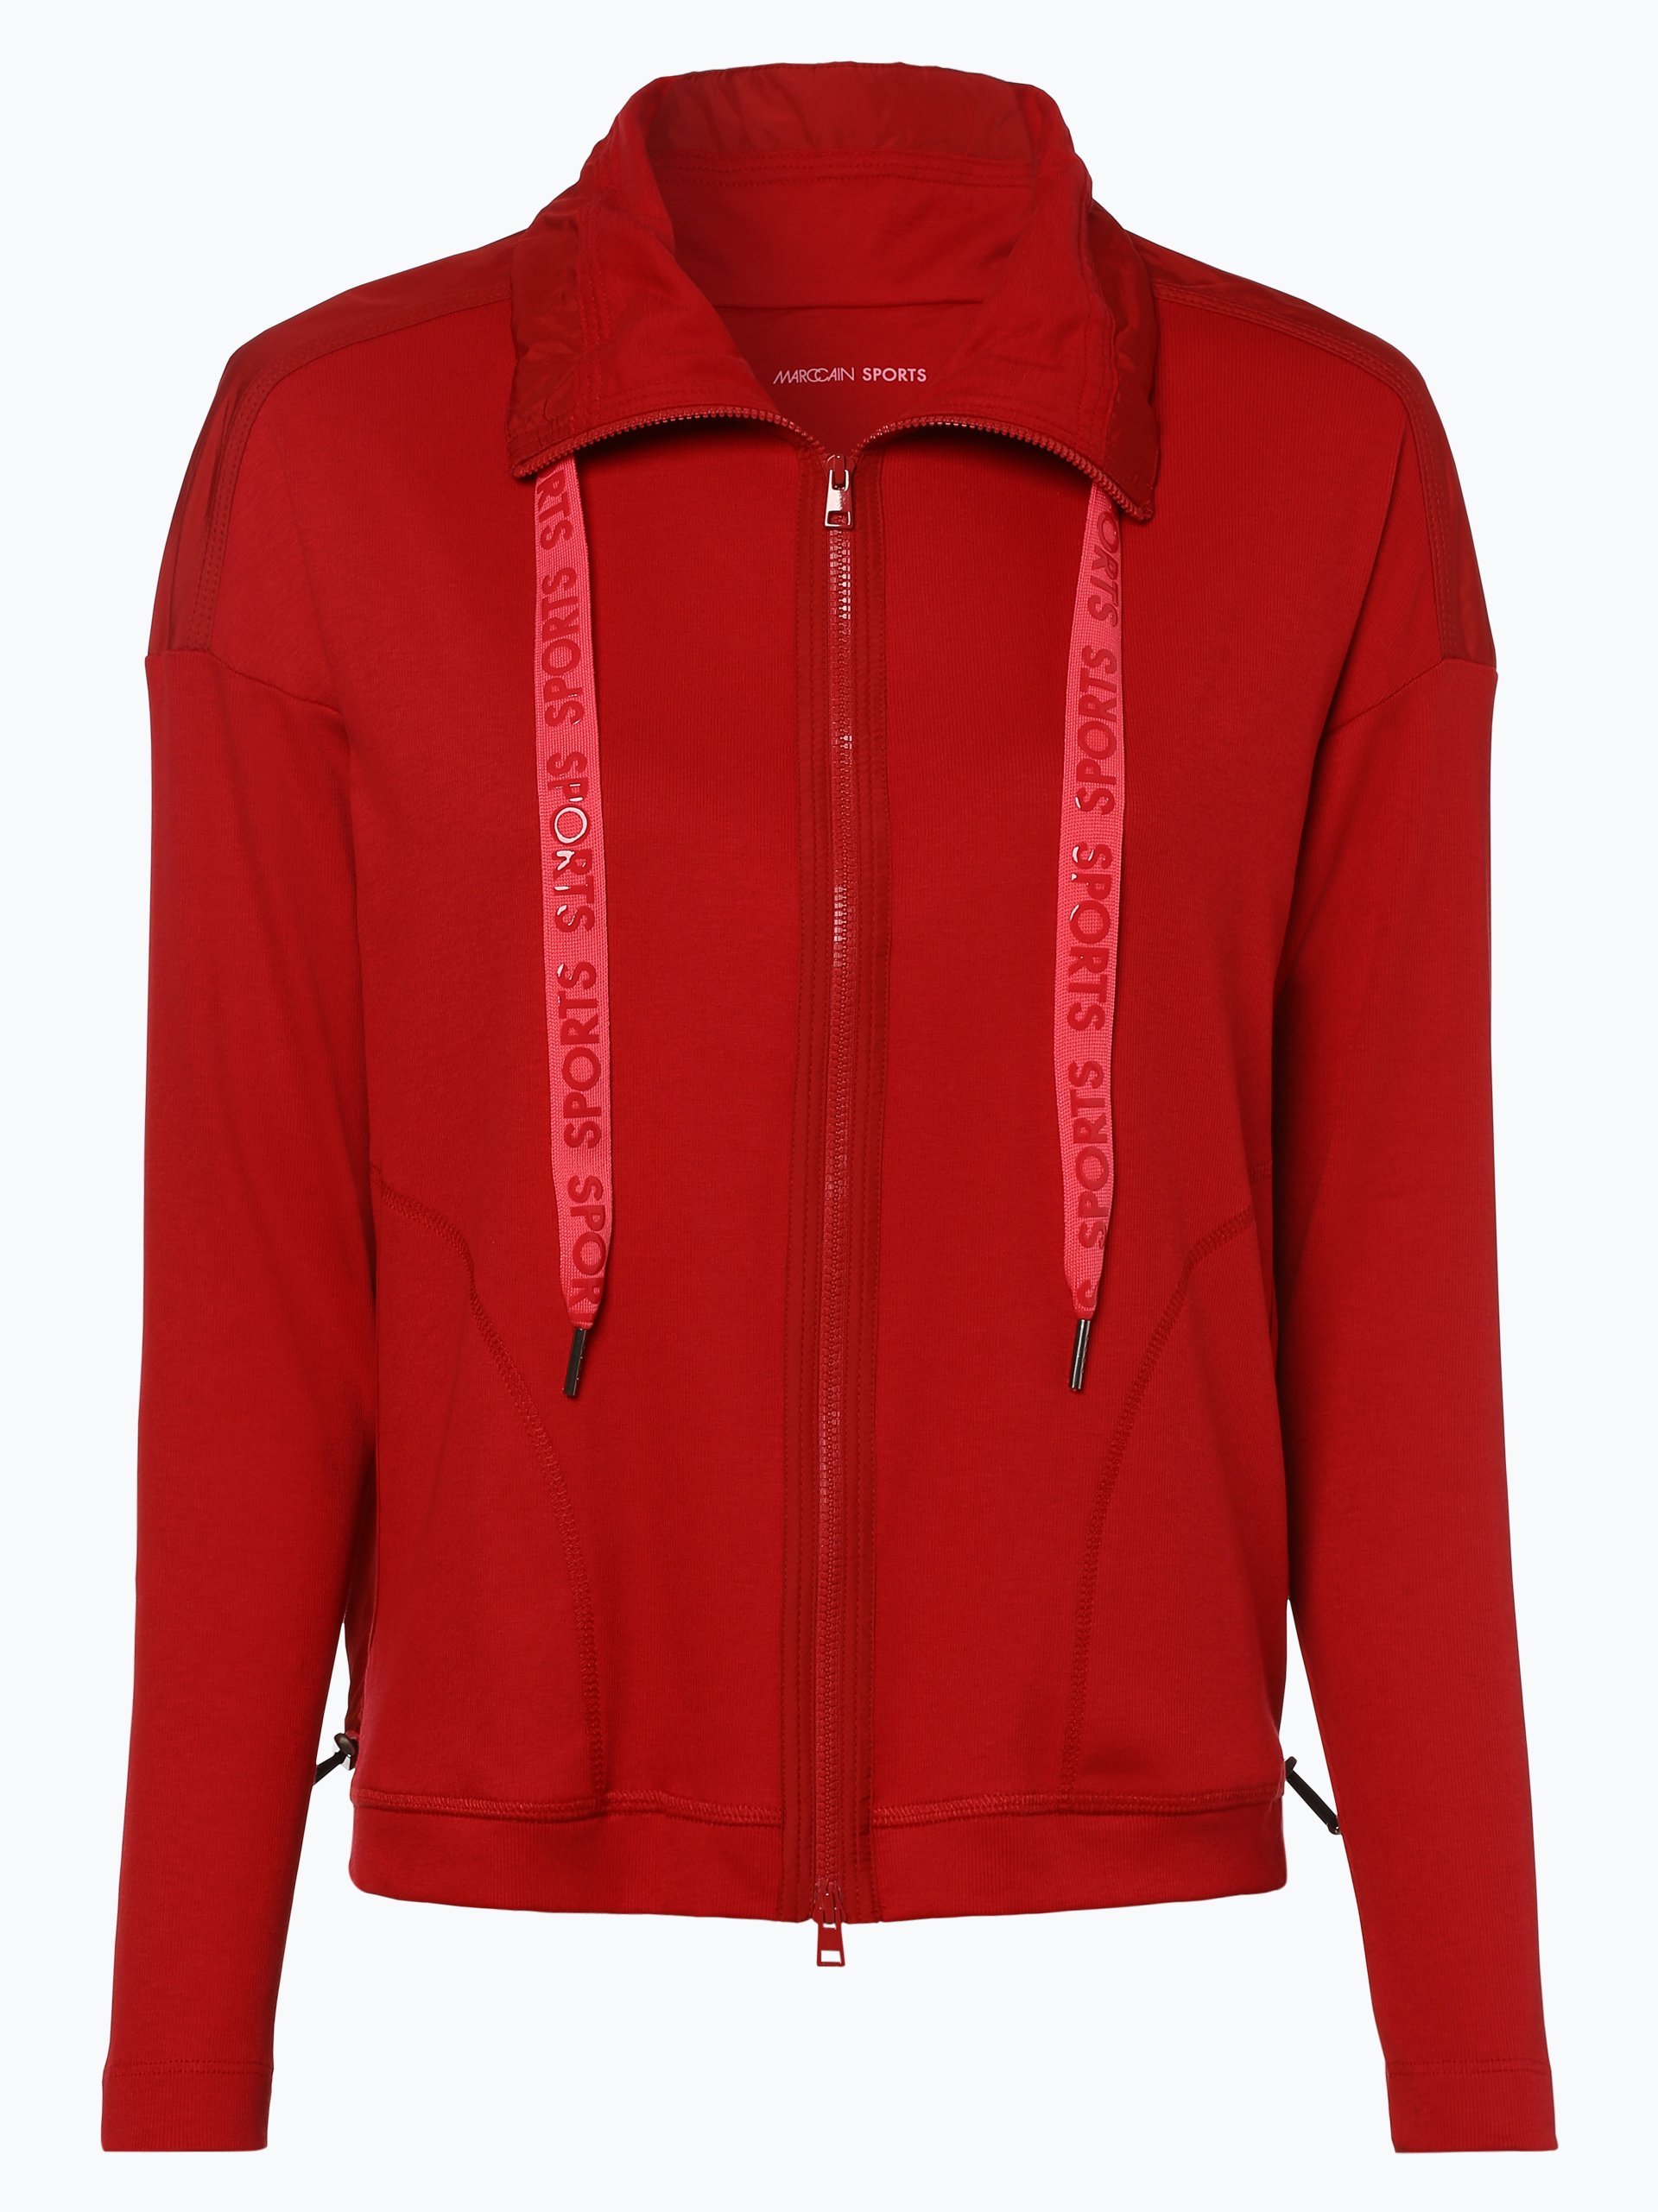 Marc Cain Sports Damen Sweatjacke